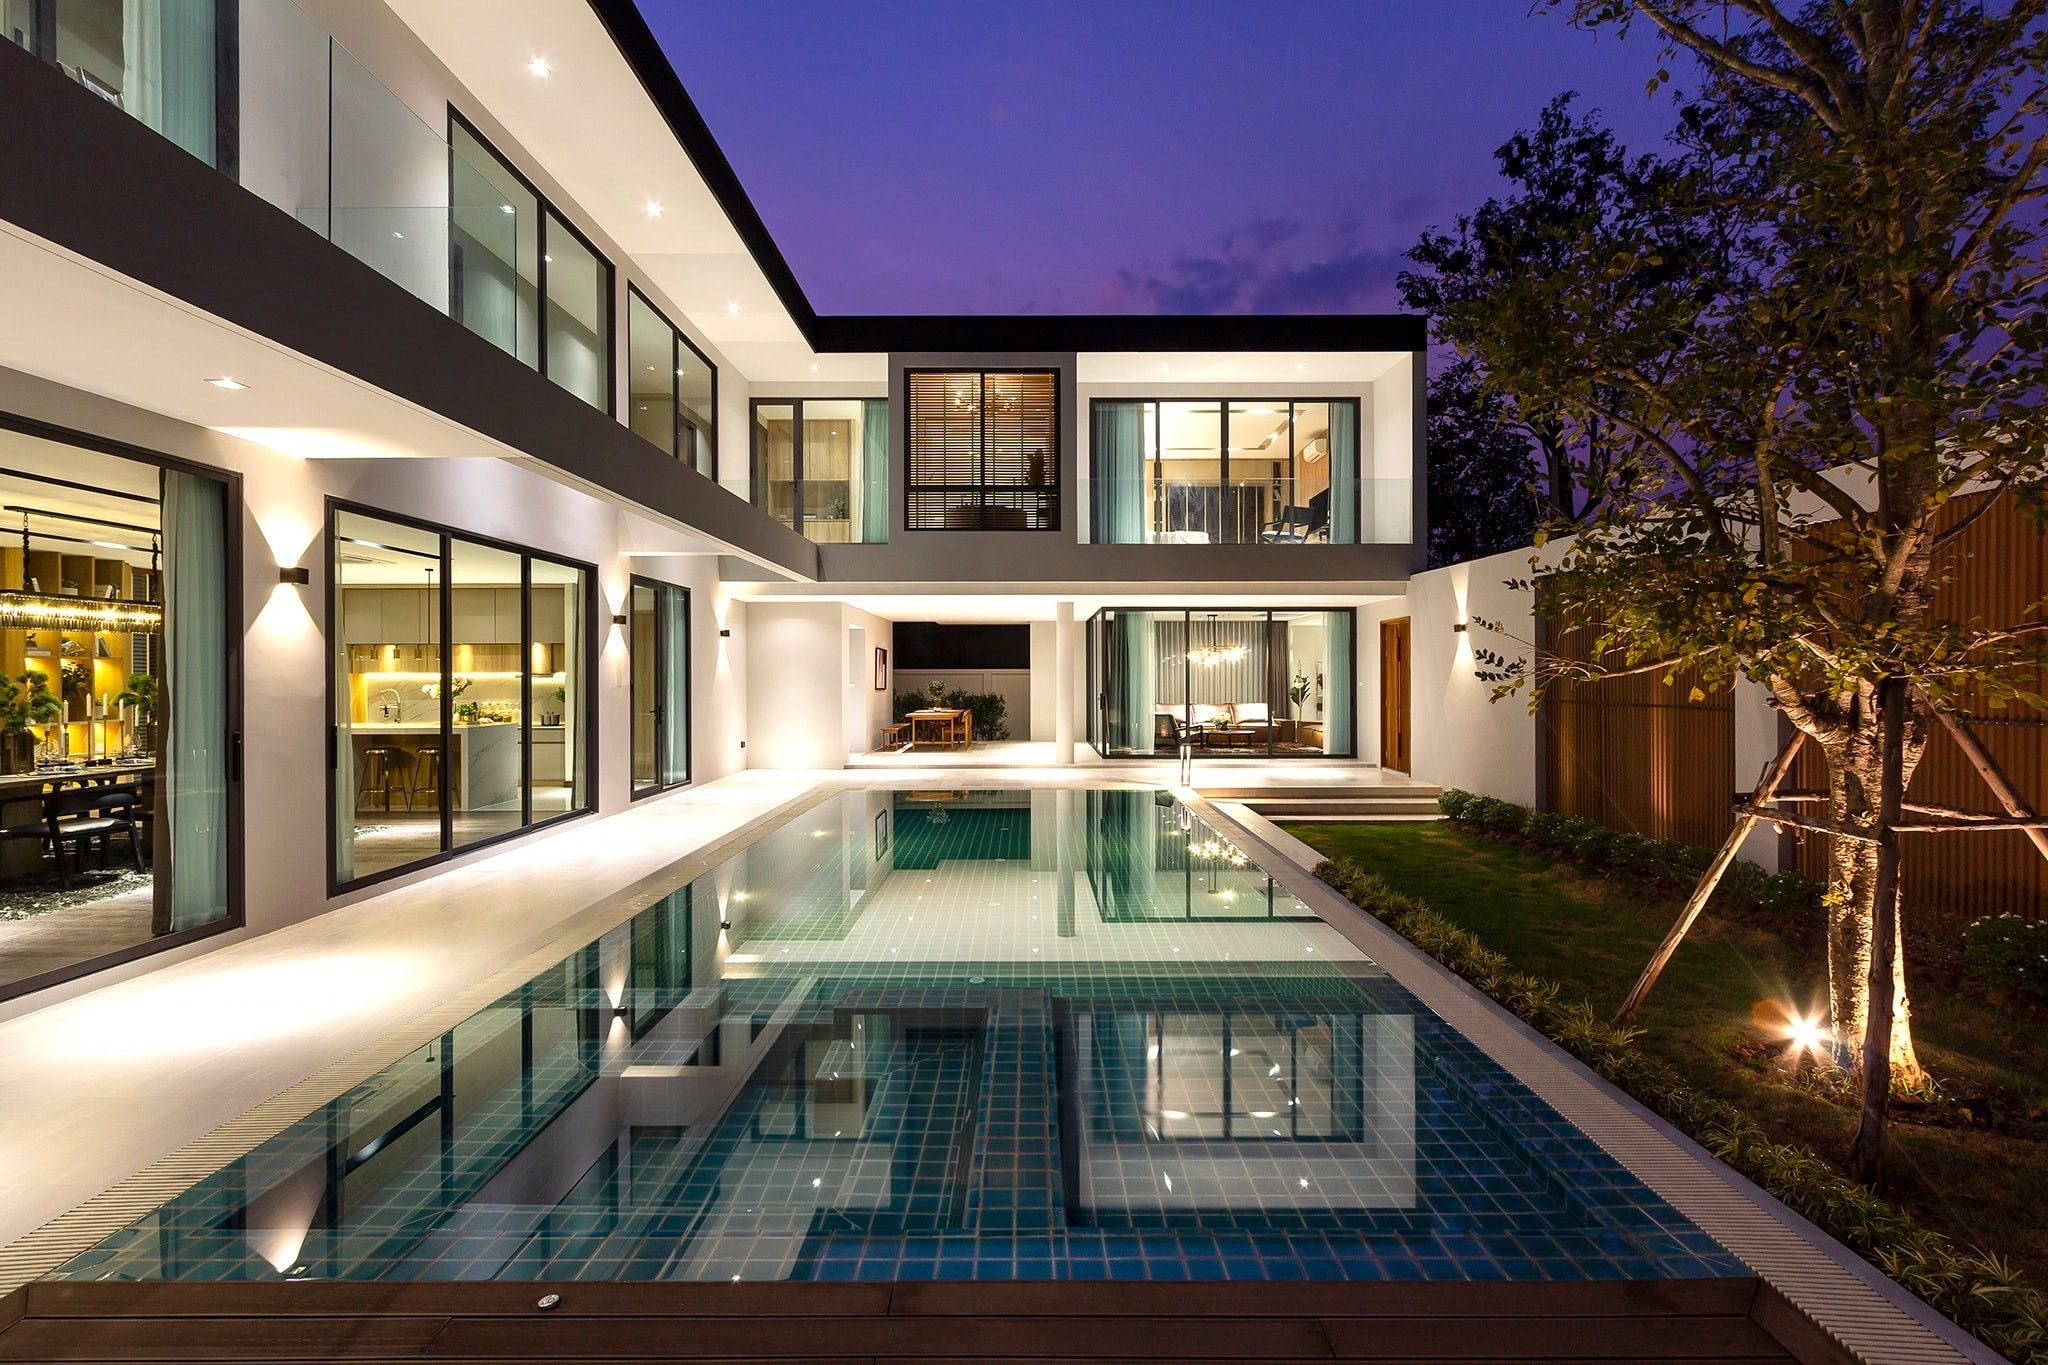 L Shaped Panoramic Windows House With Swimming Pool Modern Villa Design Hill Country Homes L Shaped House